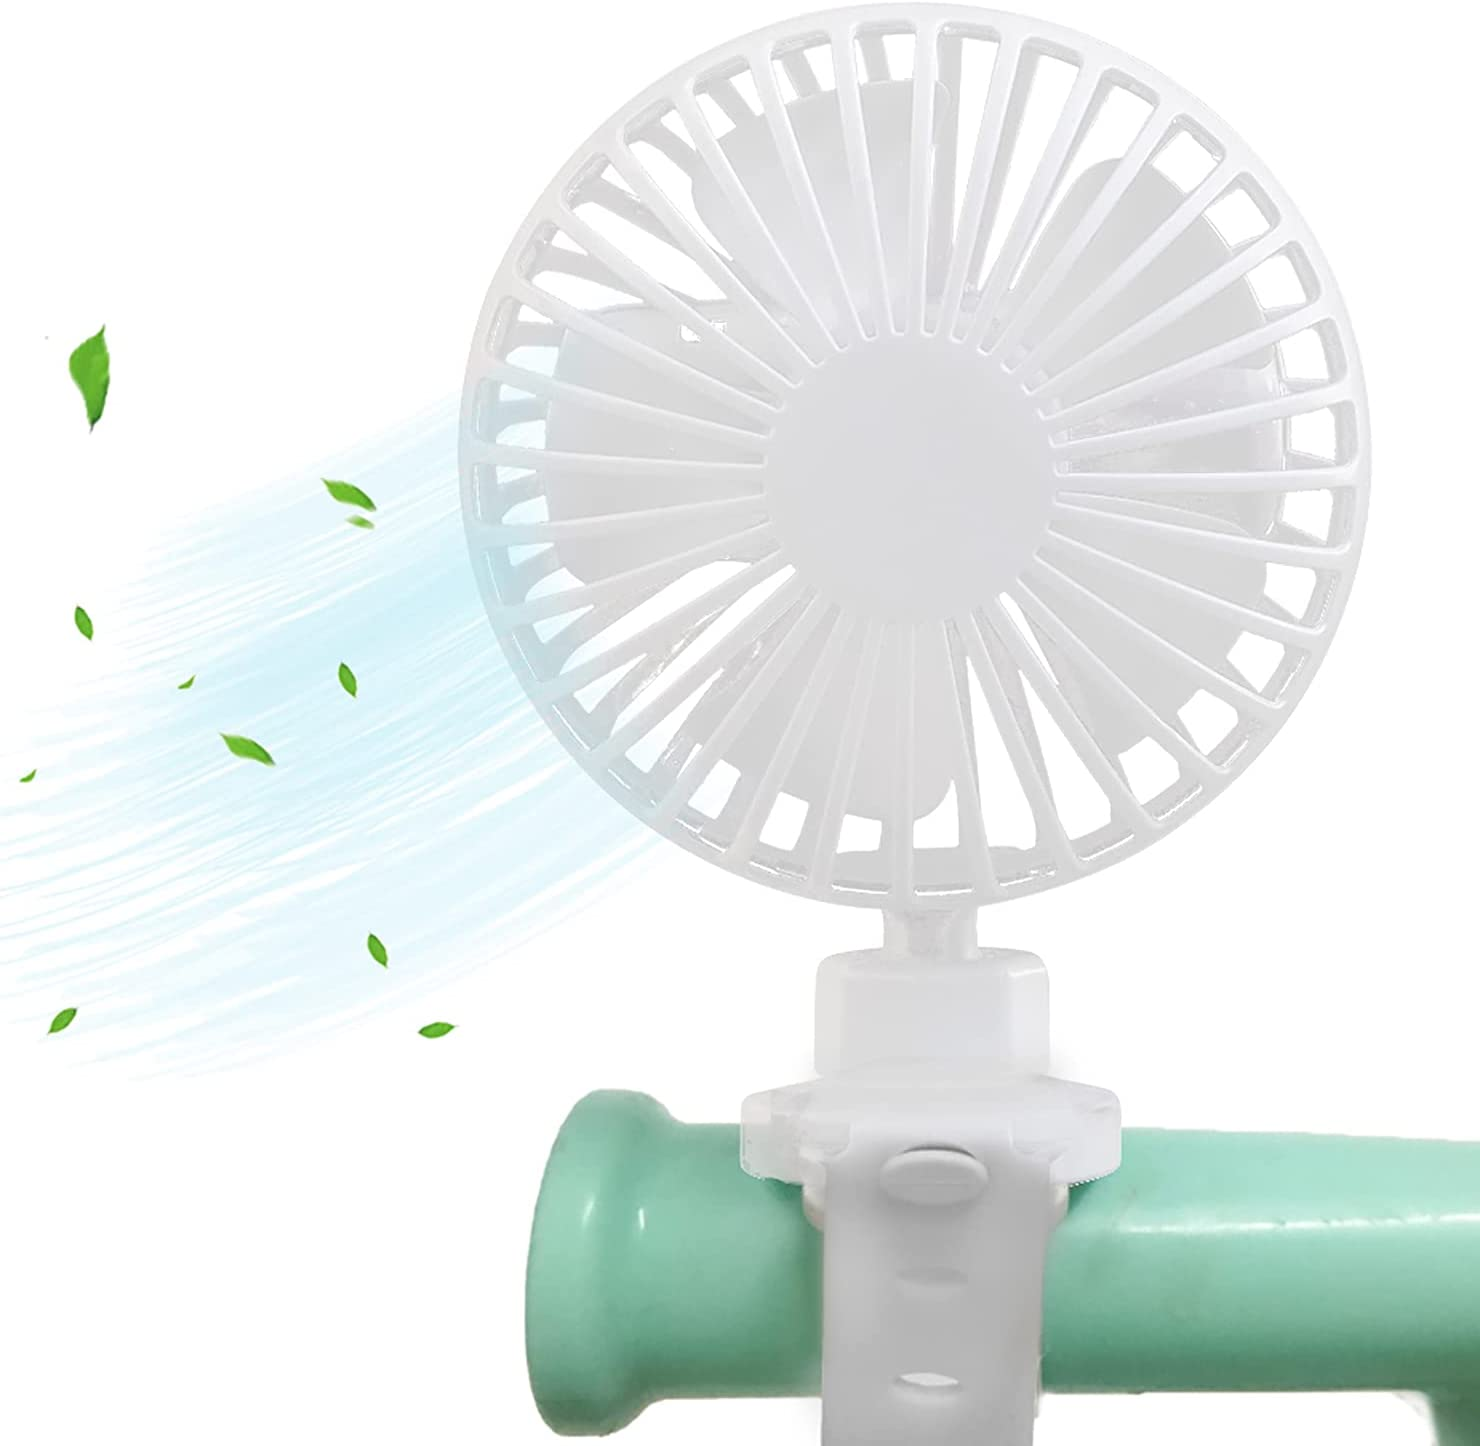 Stroller Fan, Clip on Portable Fan for Stroller, Battery Powered Mini USB Rechargeable Fan with Adjustable Silicone Strap, 3 Speeds, 360° Rotation Personal Fan for Camping, Traveling